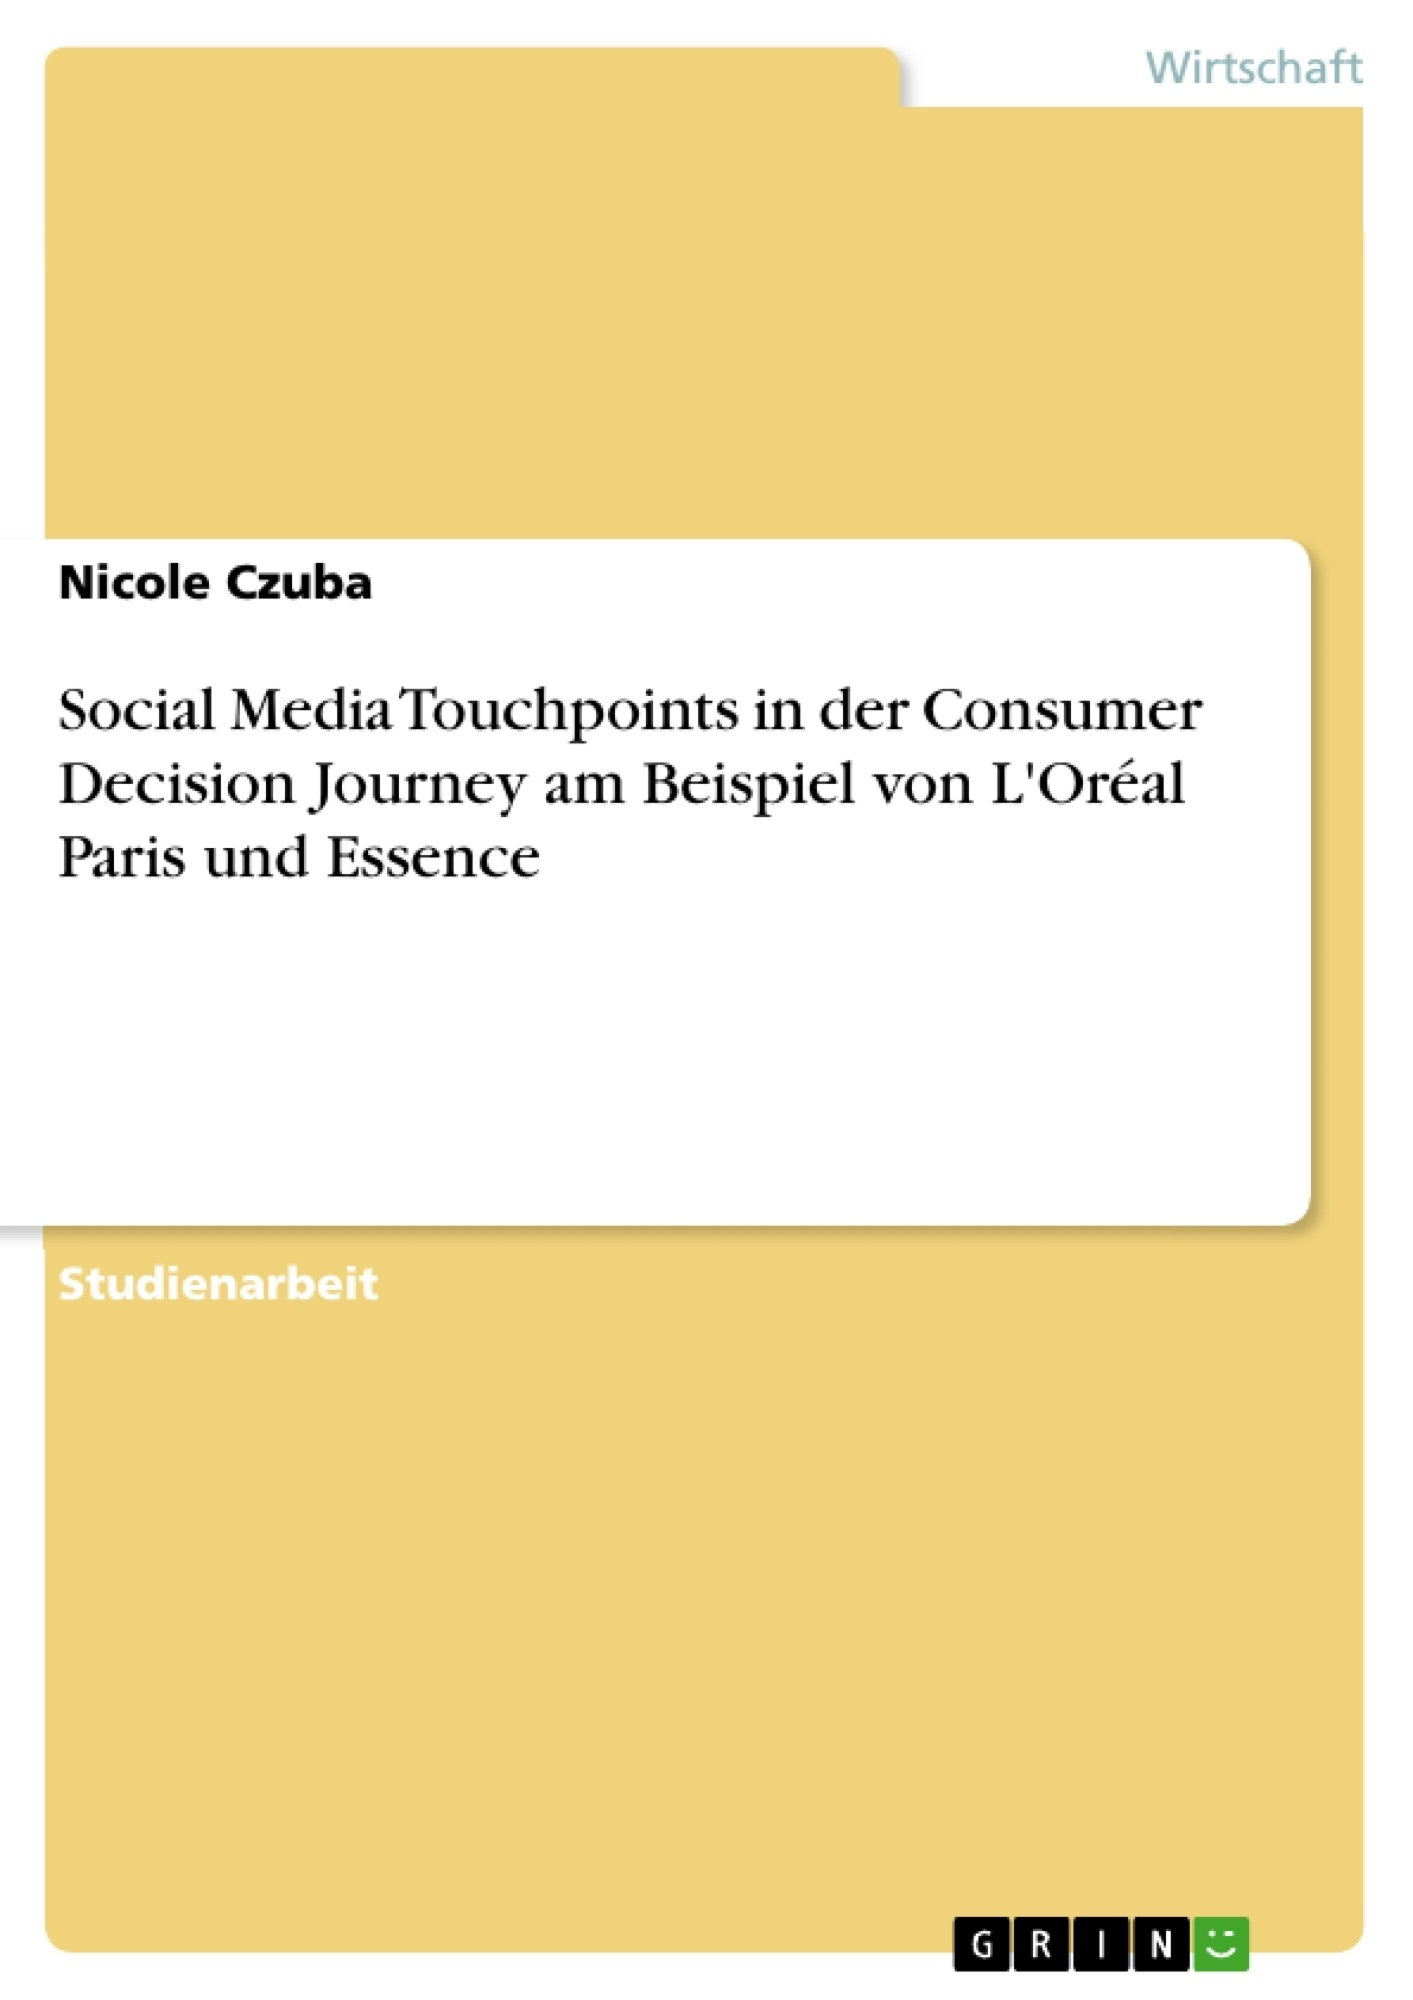 Titel: Social Media Touchpoints in der Consumer Decision Journey am Beispiel von L'Oréal Paris und Essence